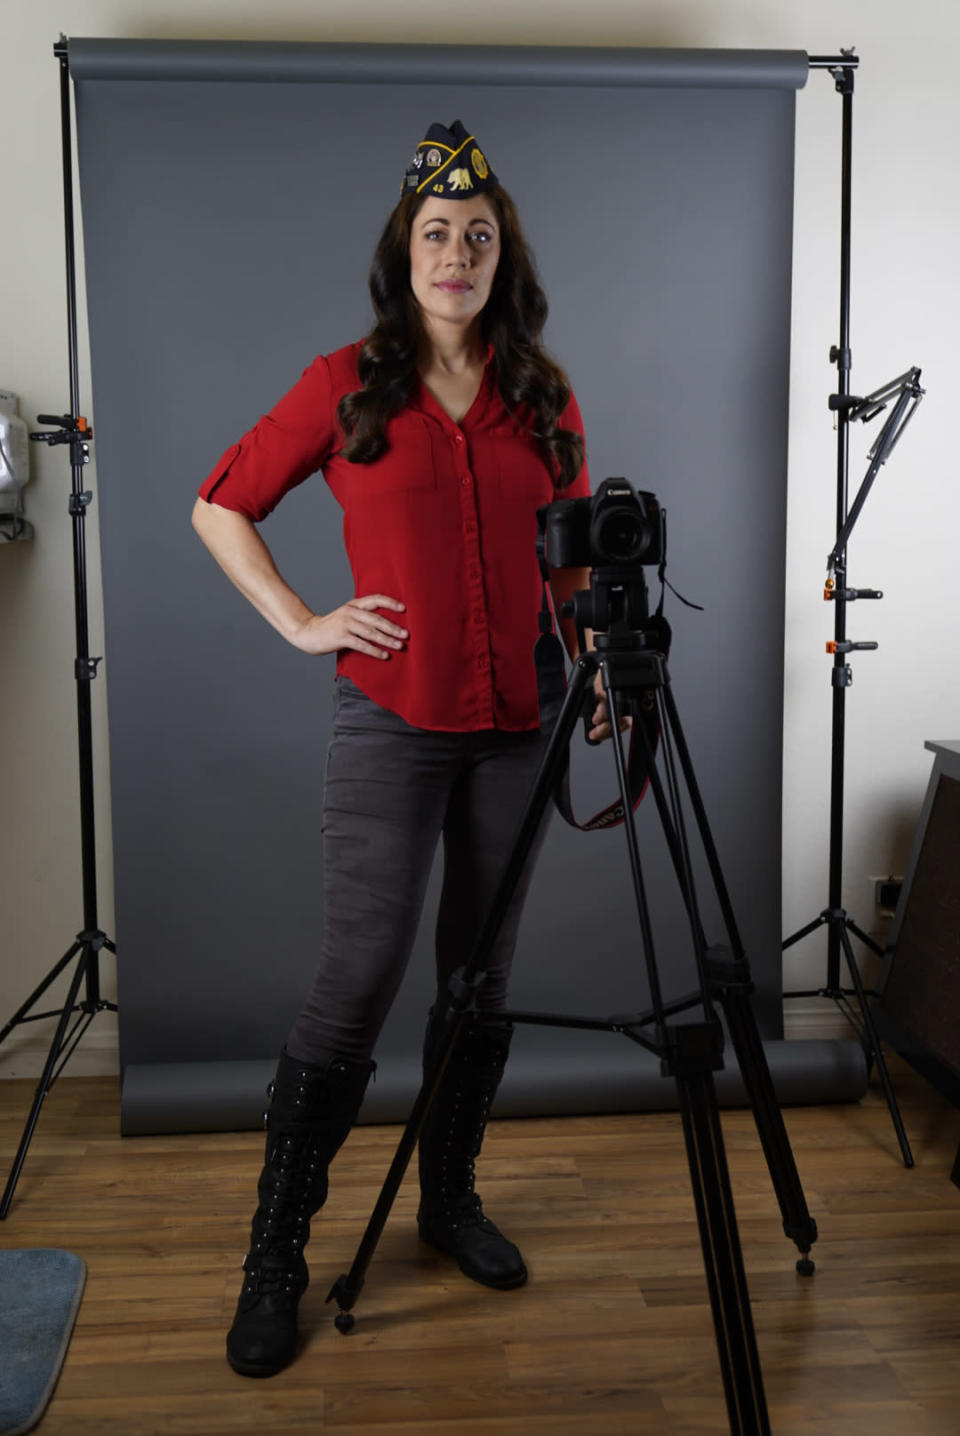 """In this June 30, 2021, photo, Los Angeles-based producer, actress and Marine Corps veteran Jennifer Brofer poses at her apartment in Los Angeles. Brofer will never forget the loud, popping noise. It was on a hot July afternoon in 2010 when her convoy rolled over an IED on a road in Helmand Province four months into her deployment to Afghanistan. Her heart froze as she and her fellow Marines stopped and realized what had occurred. But what followed were only the sounds of daily life. Brofer, 38, who now works in the film industry in Hollywood, said she feels proud to have served """"shoulder-to-shoulder with my male marine counterparts"""" in a time of war. (AP Photo/Damian Dovarganes)"""